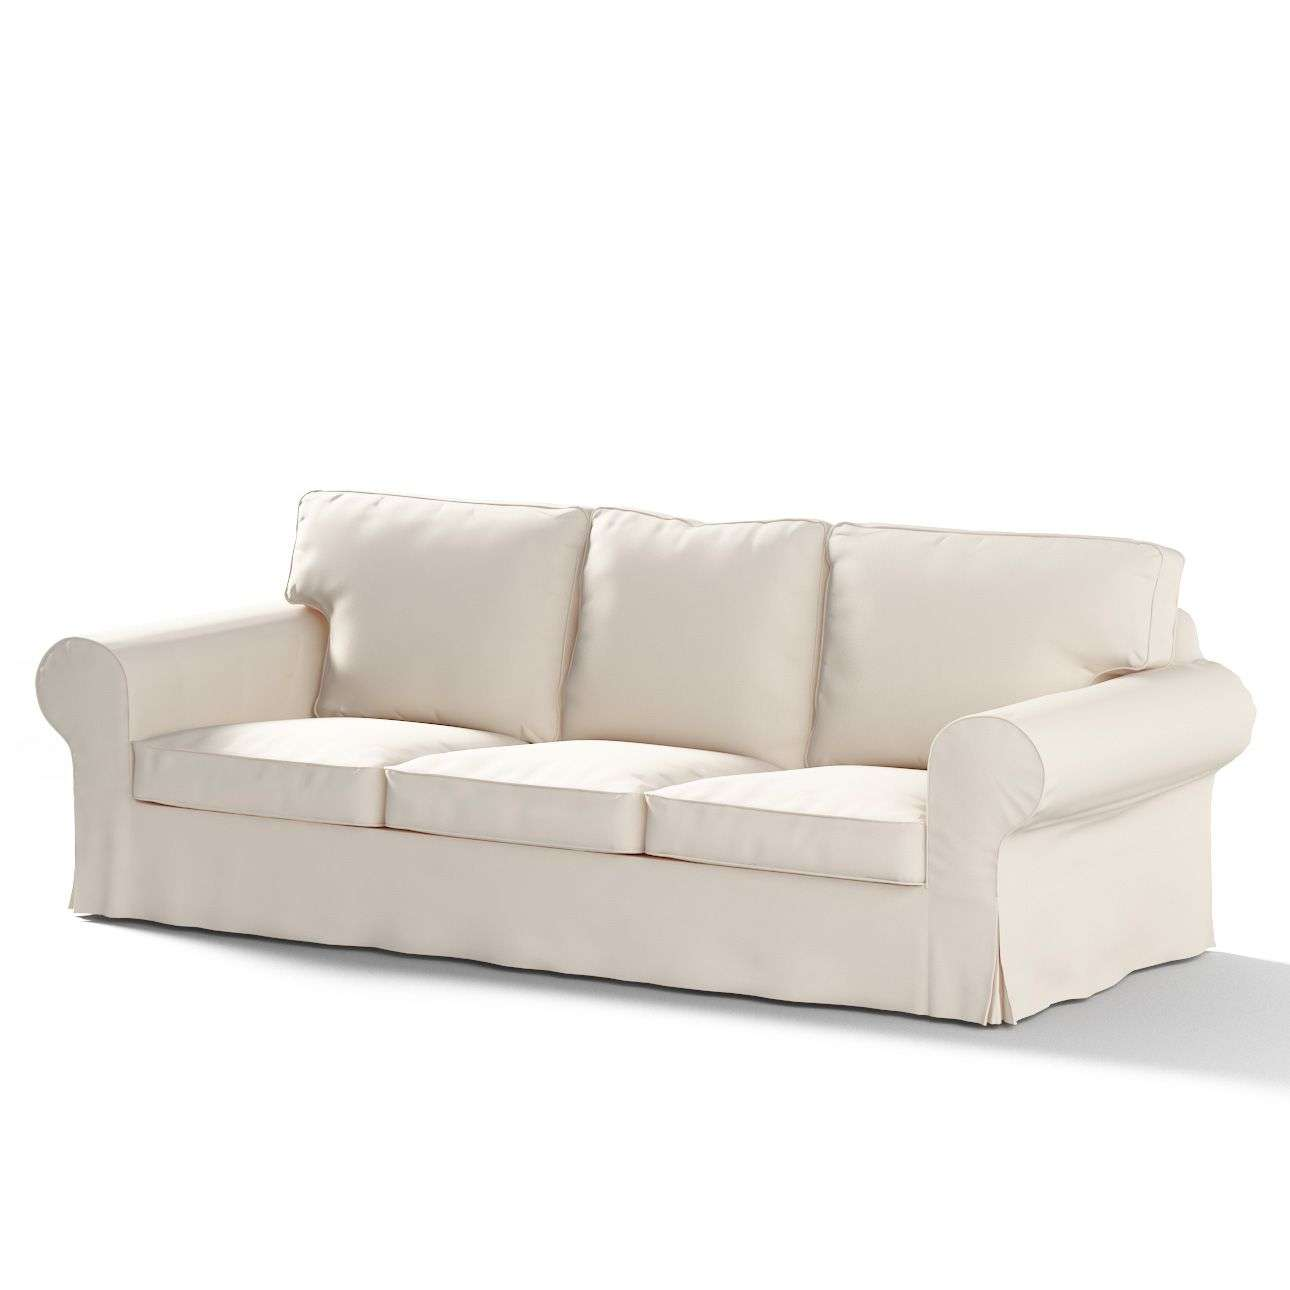 3 Seater Sofa Covers Uk Velcromag